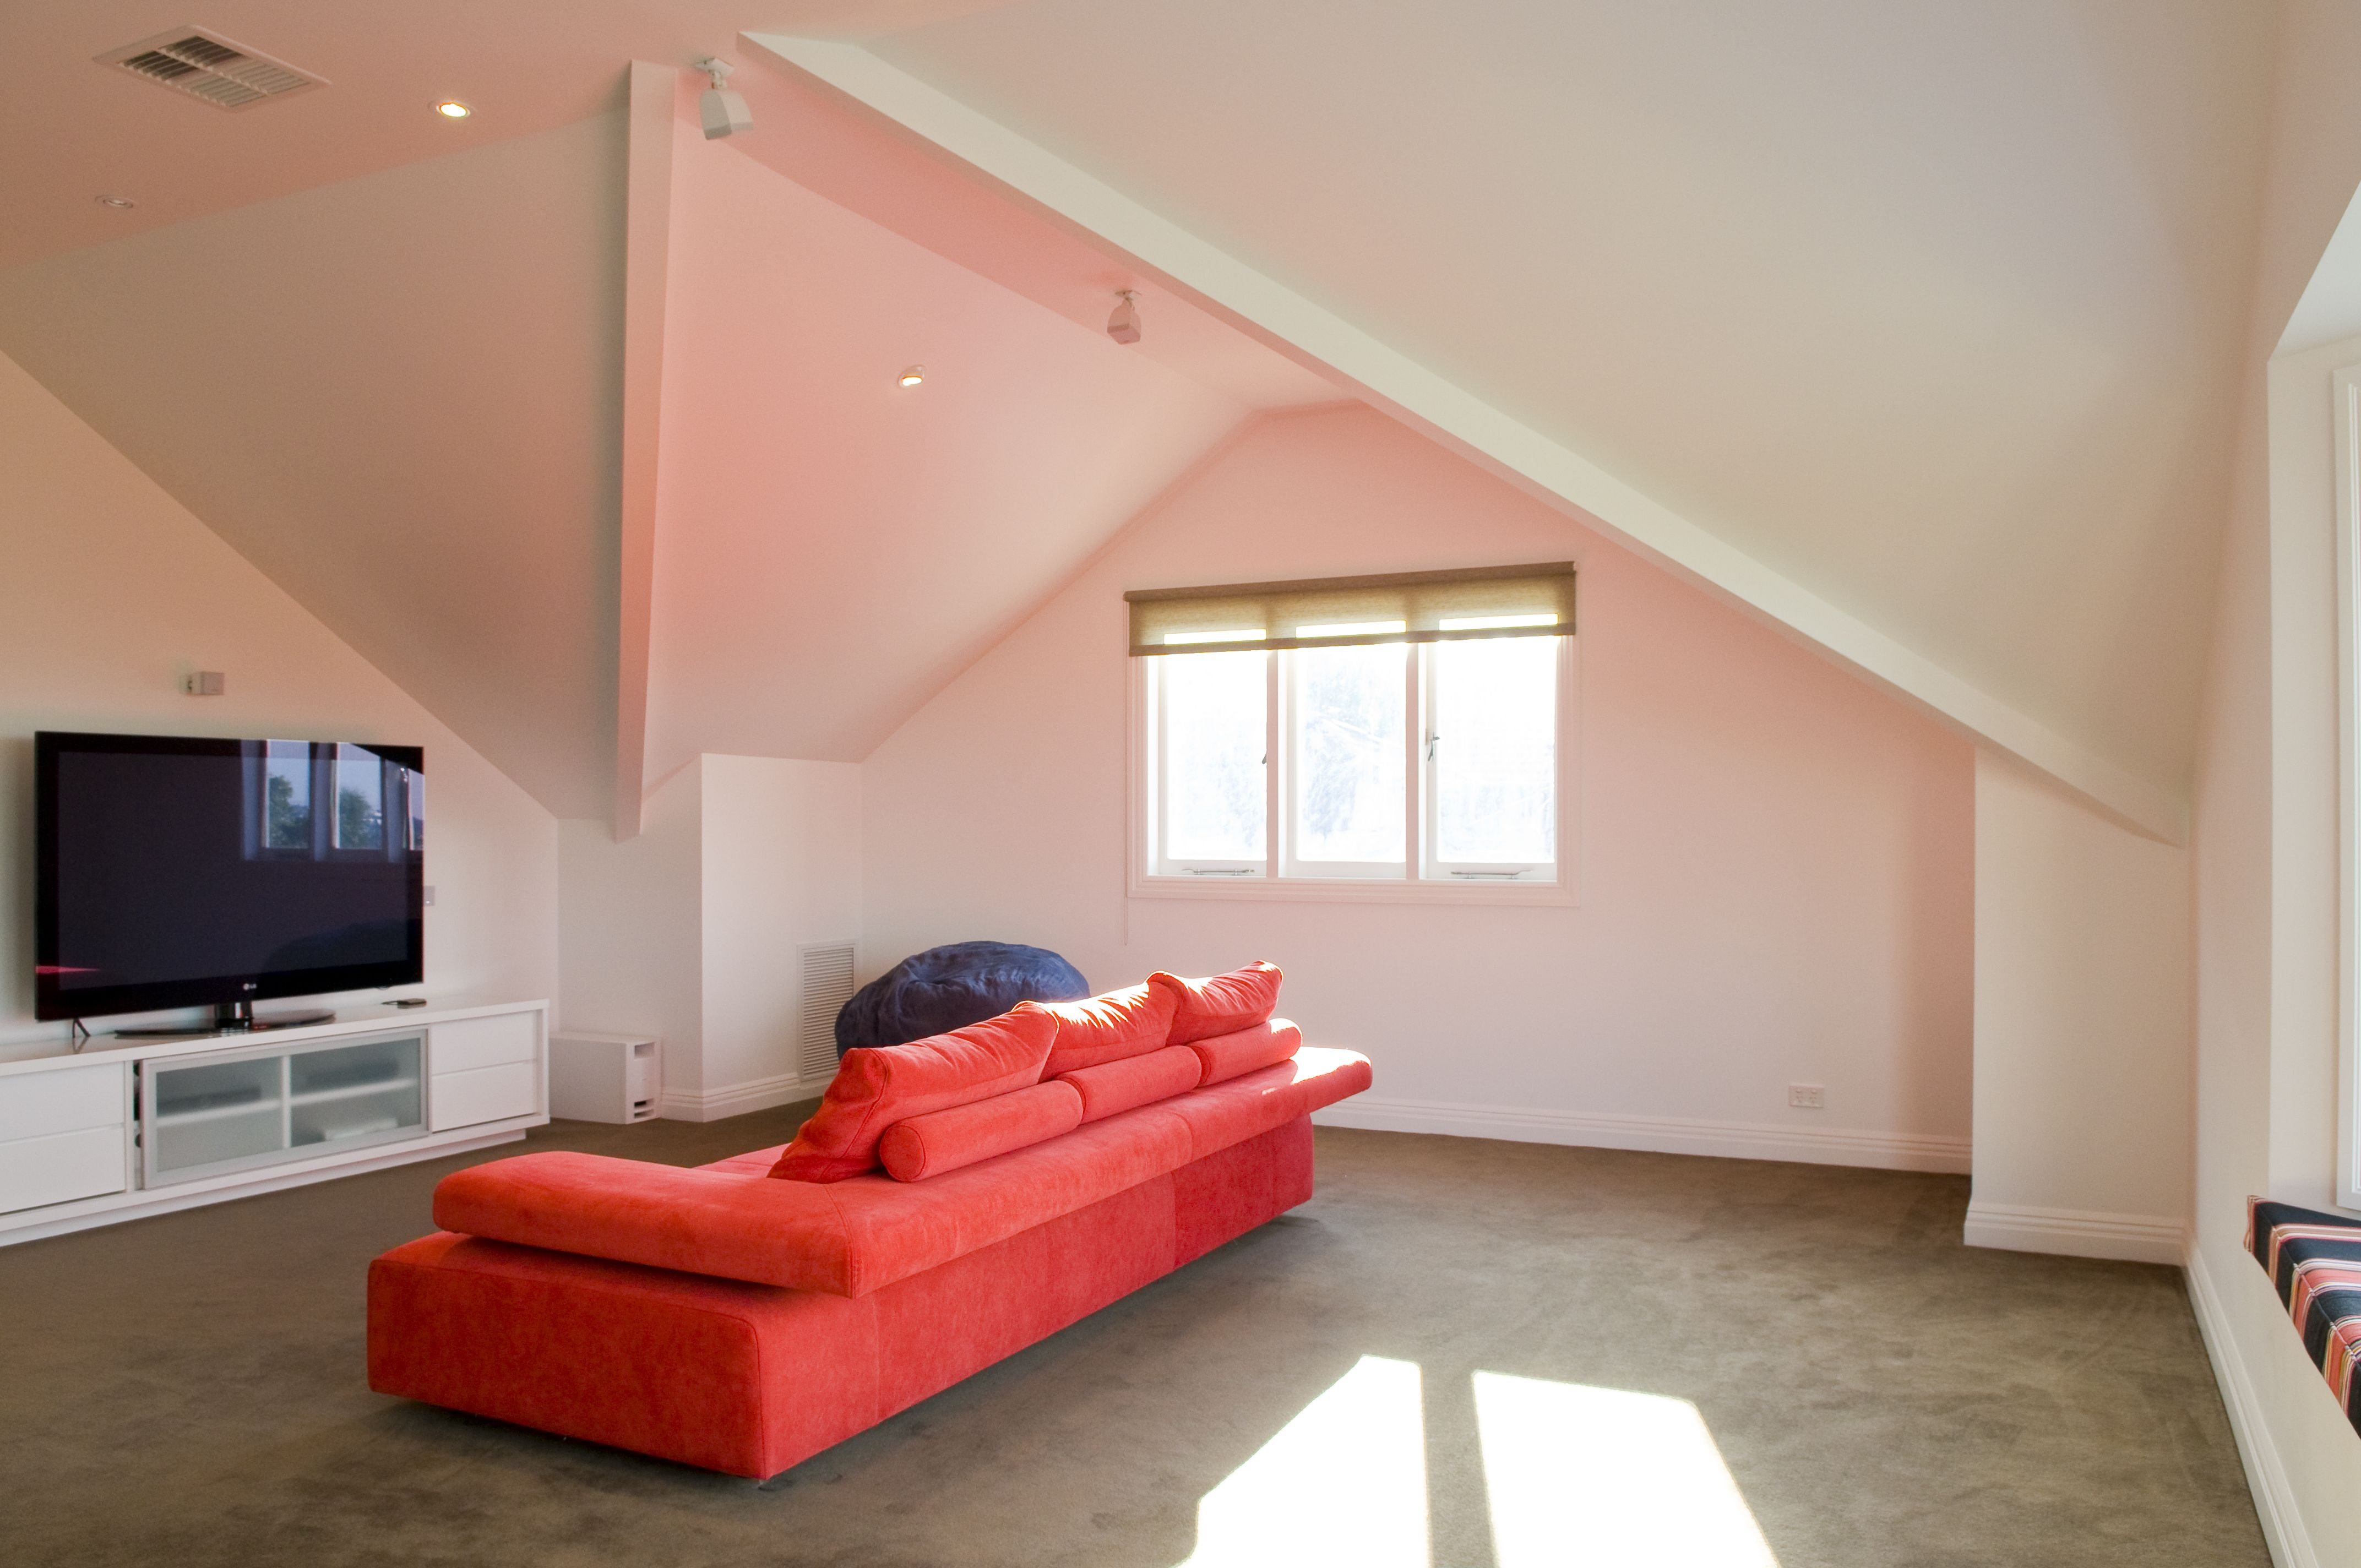 Loft bedroom regulations  Amazing Attic conversion into a seperate living area at a home in